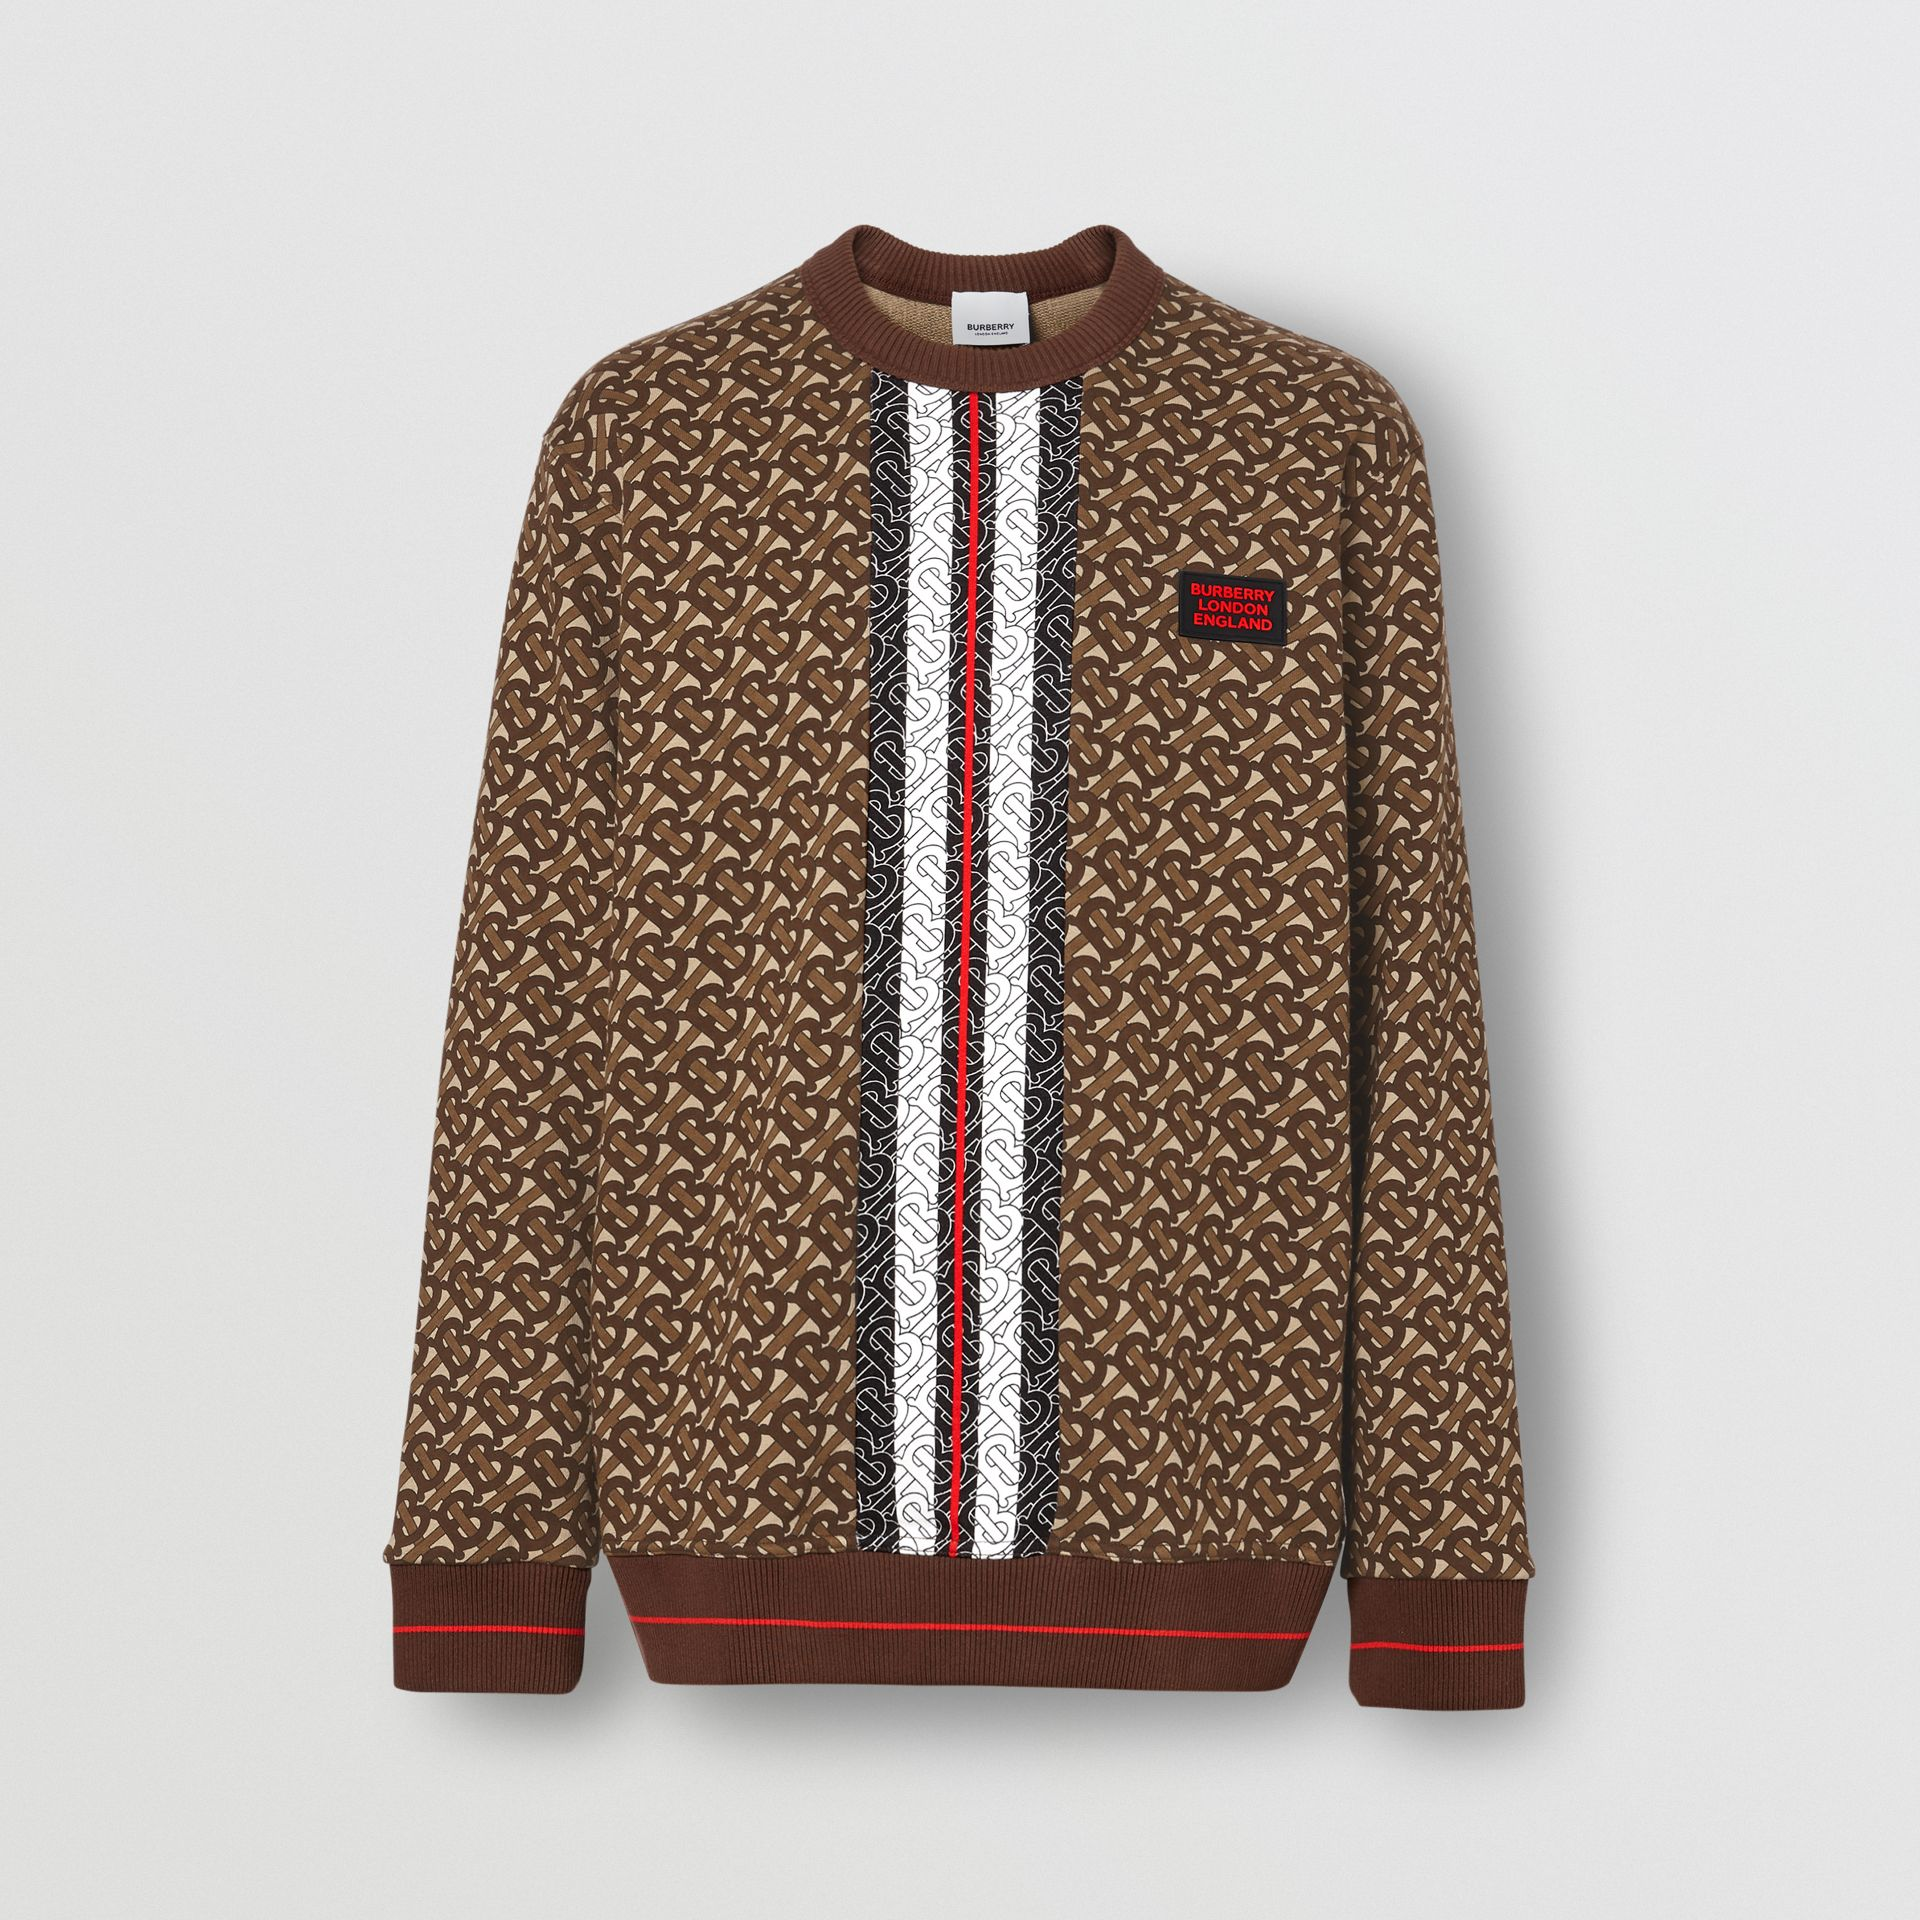 Monogram Stripe Print Cotton Sweatshirt in Bridle Brown - Men | Burberry Canada - gallery image 3